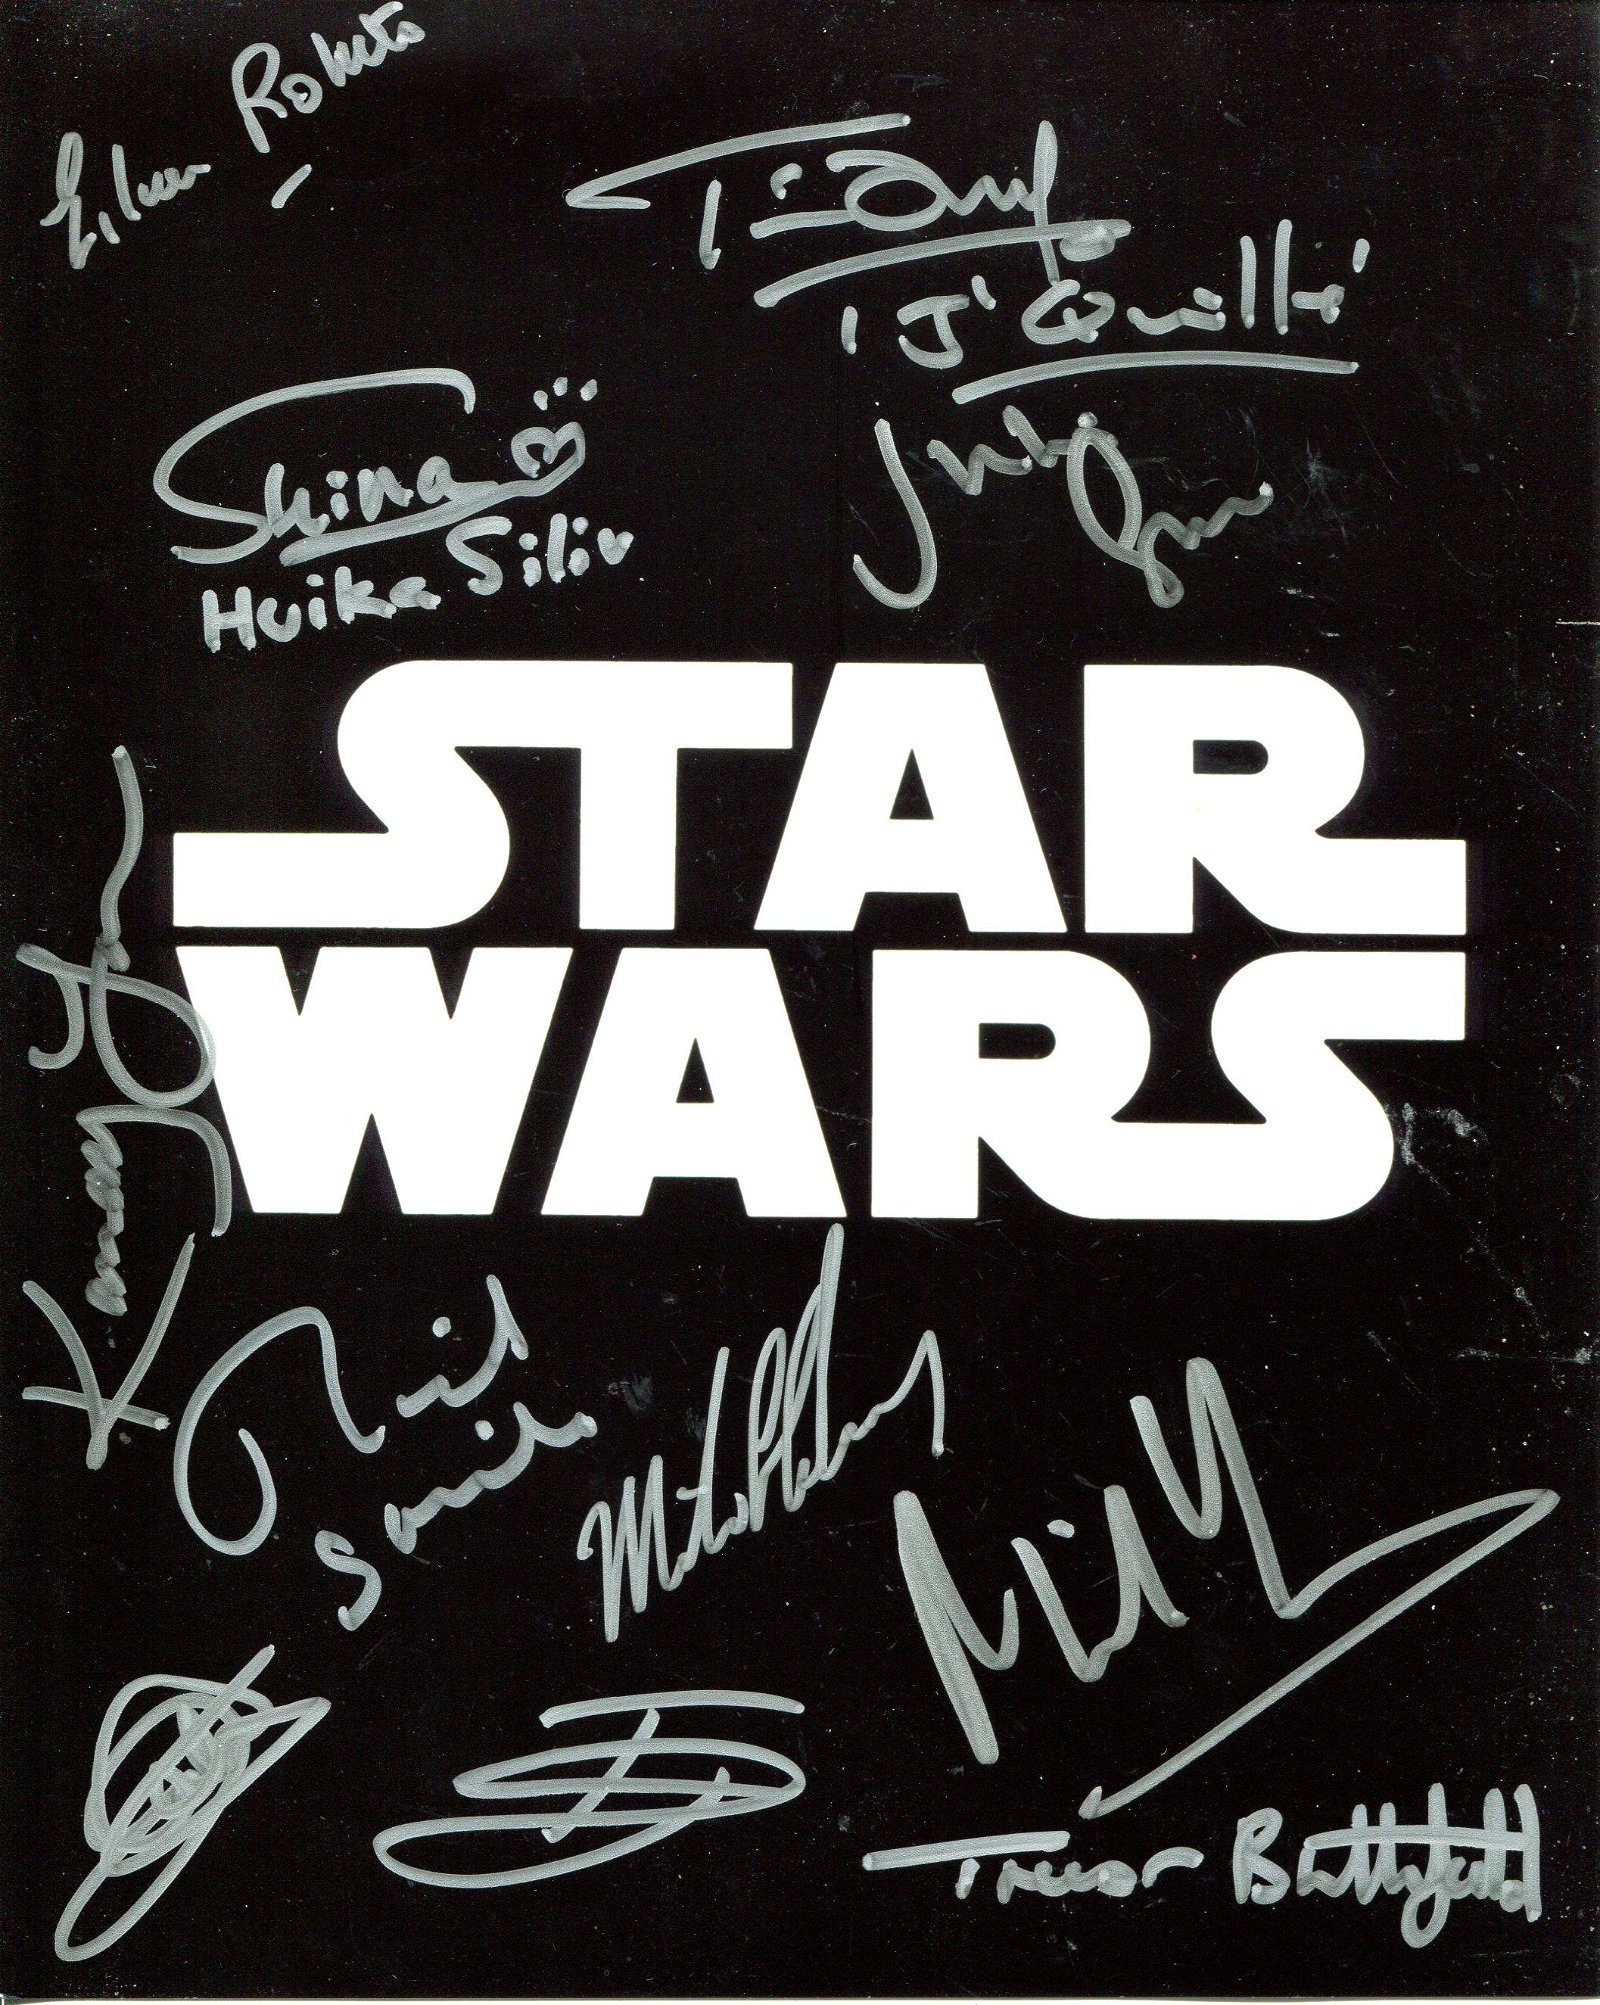 Star Wars multi signed 8x10 photo signed by ELEVEN